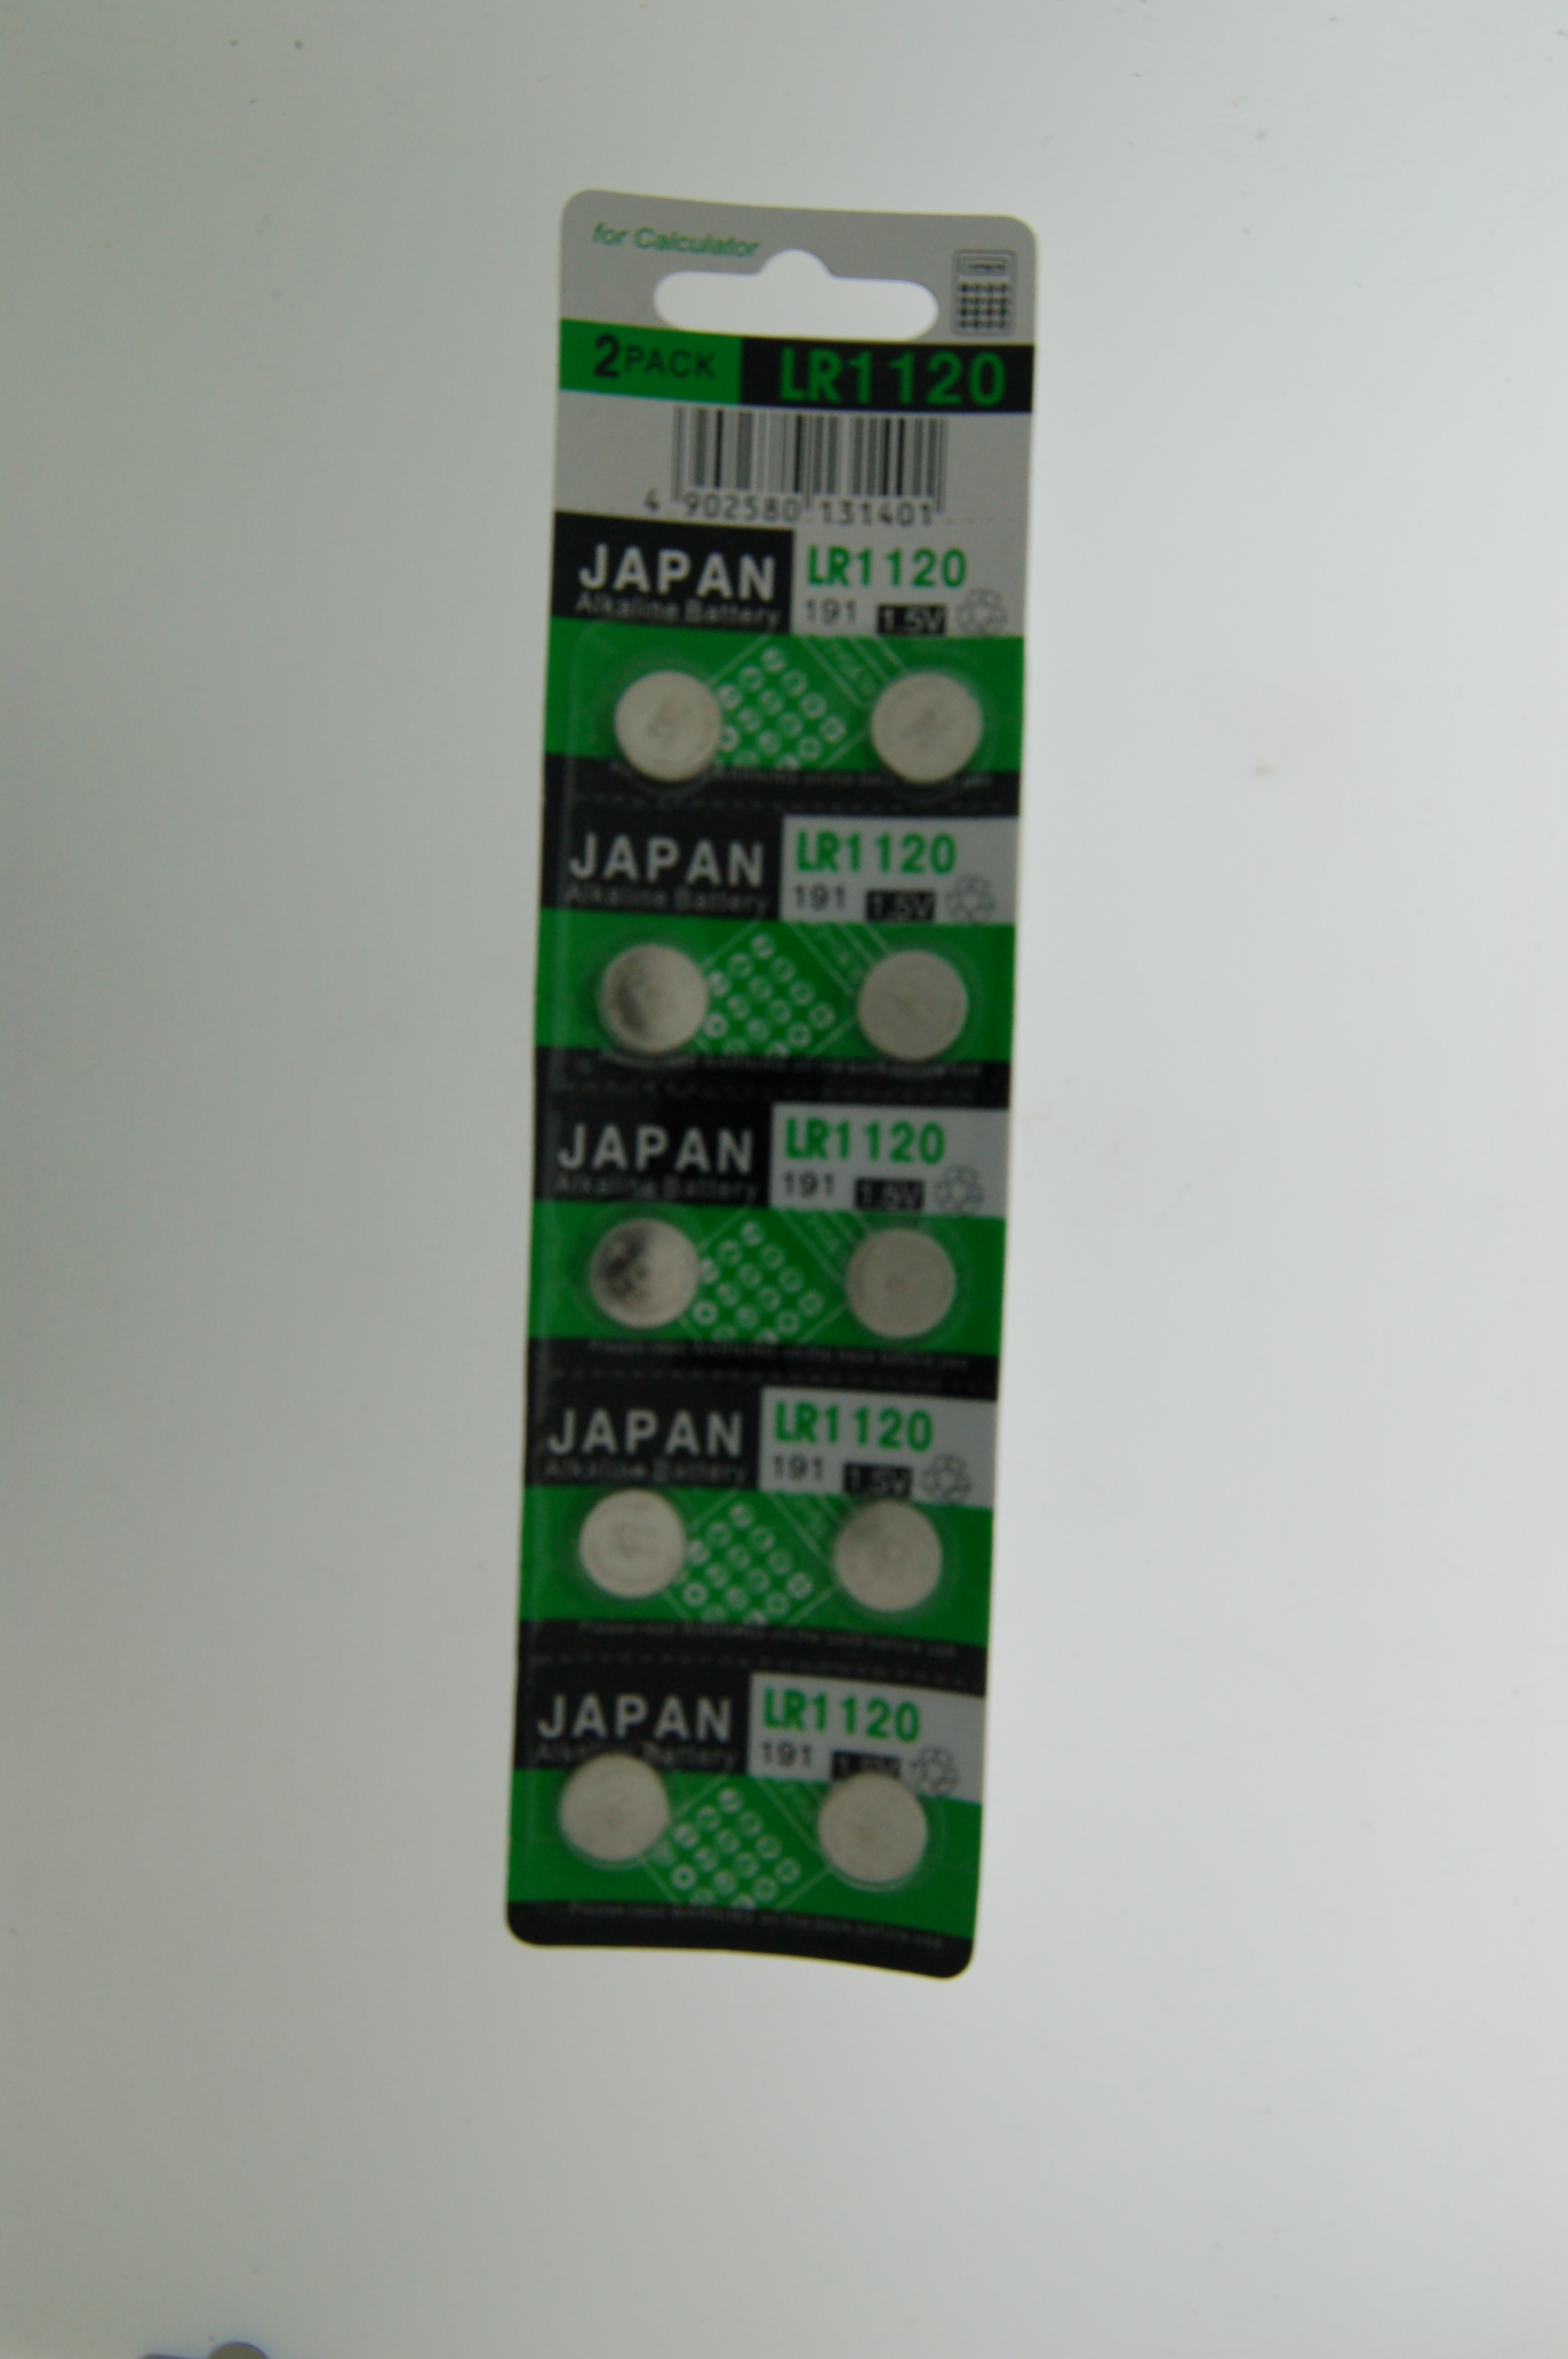 Japan Alkaline Battery LR1120